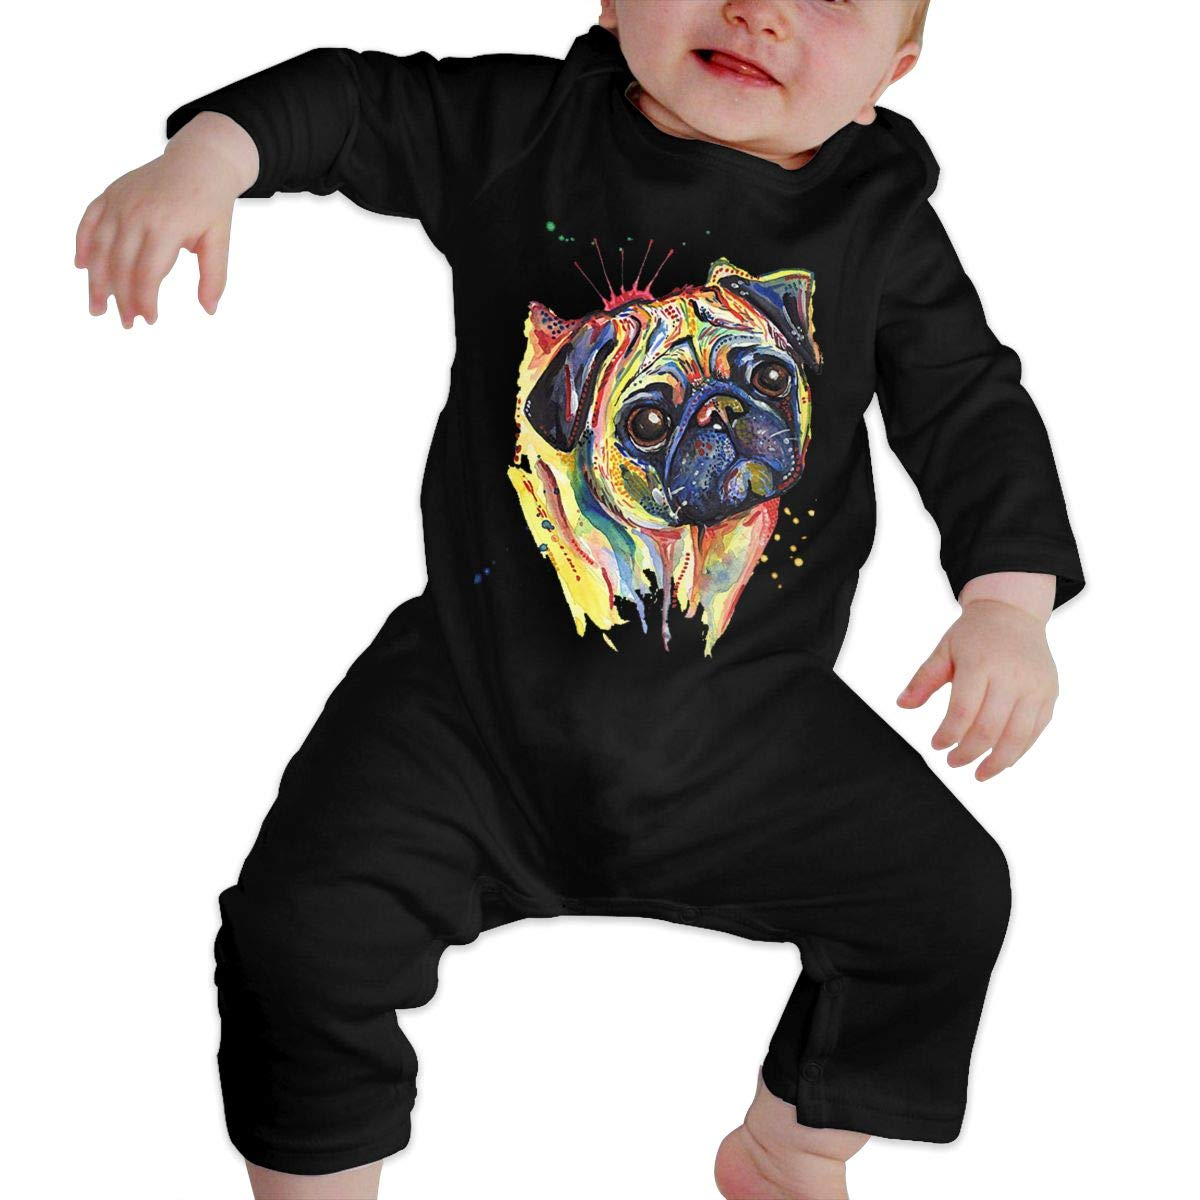 Fasenix Colorful Batteries Newborn Baby Boy Girl Romper Jumpsuit Long Sleeve Bodysuit Overalls Outfits Clothes